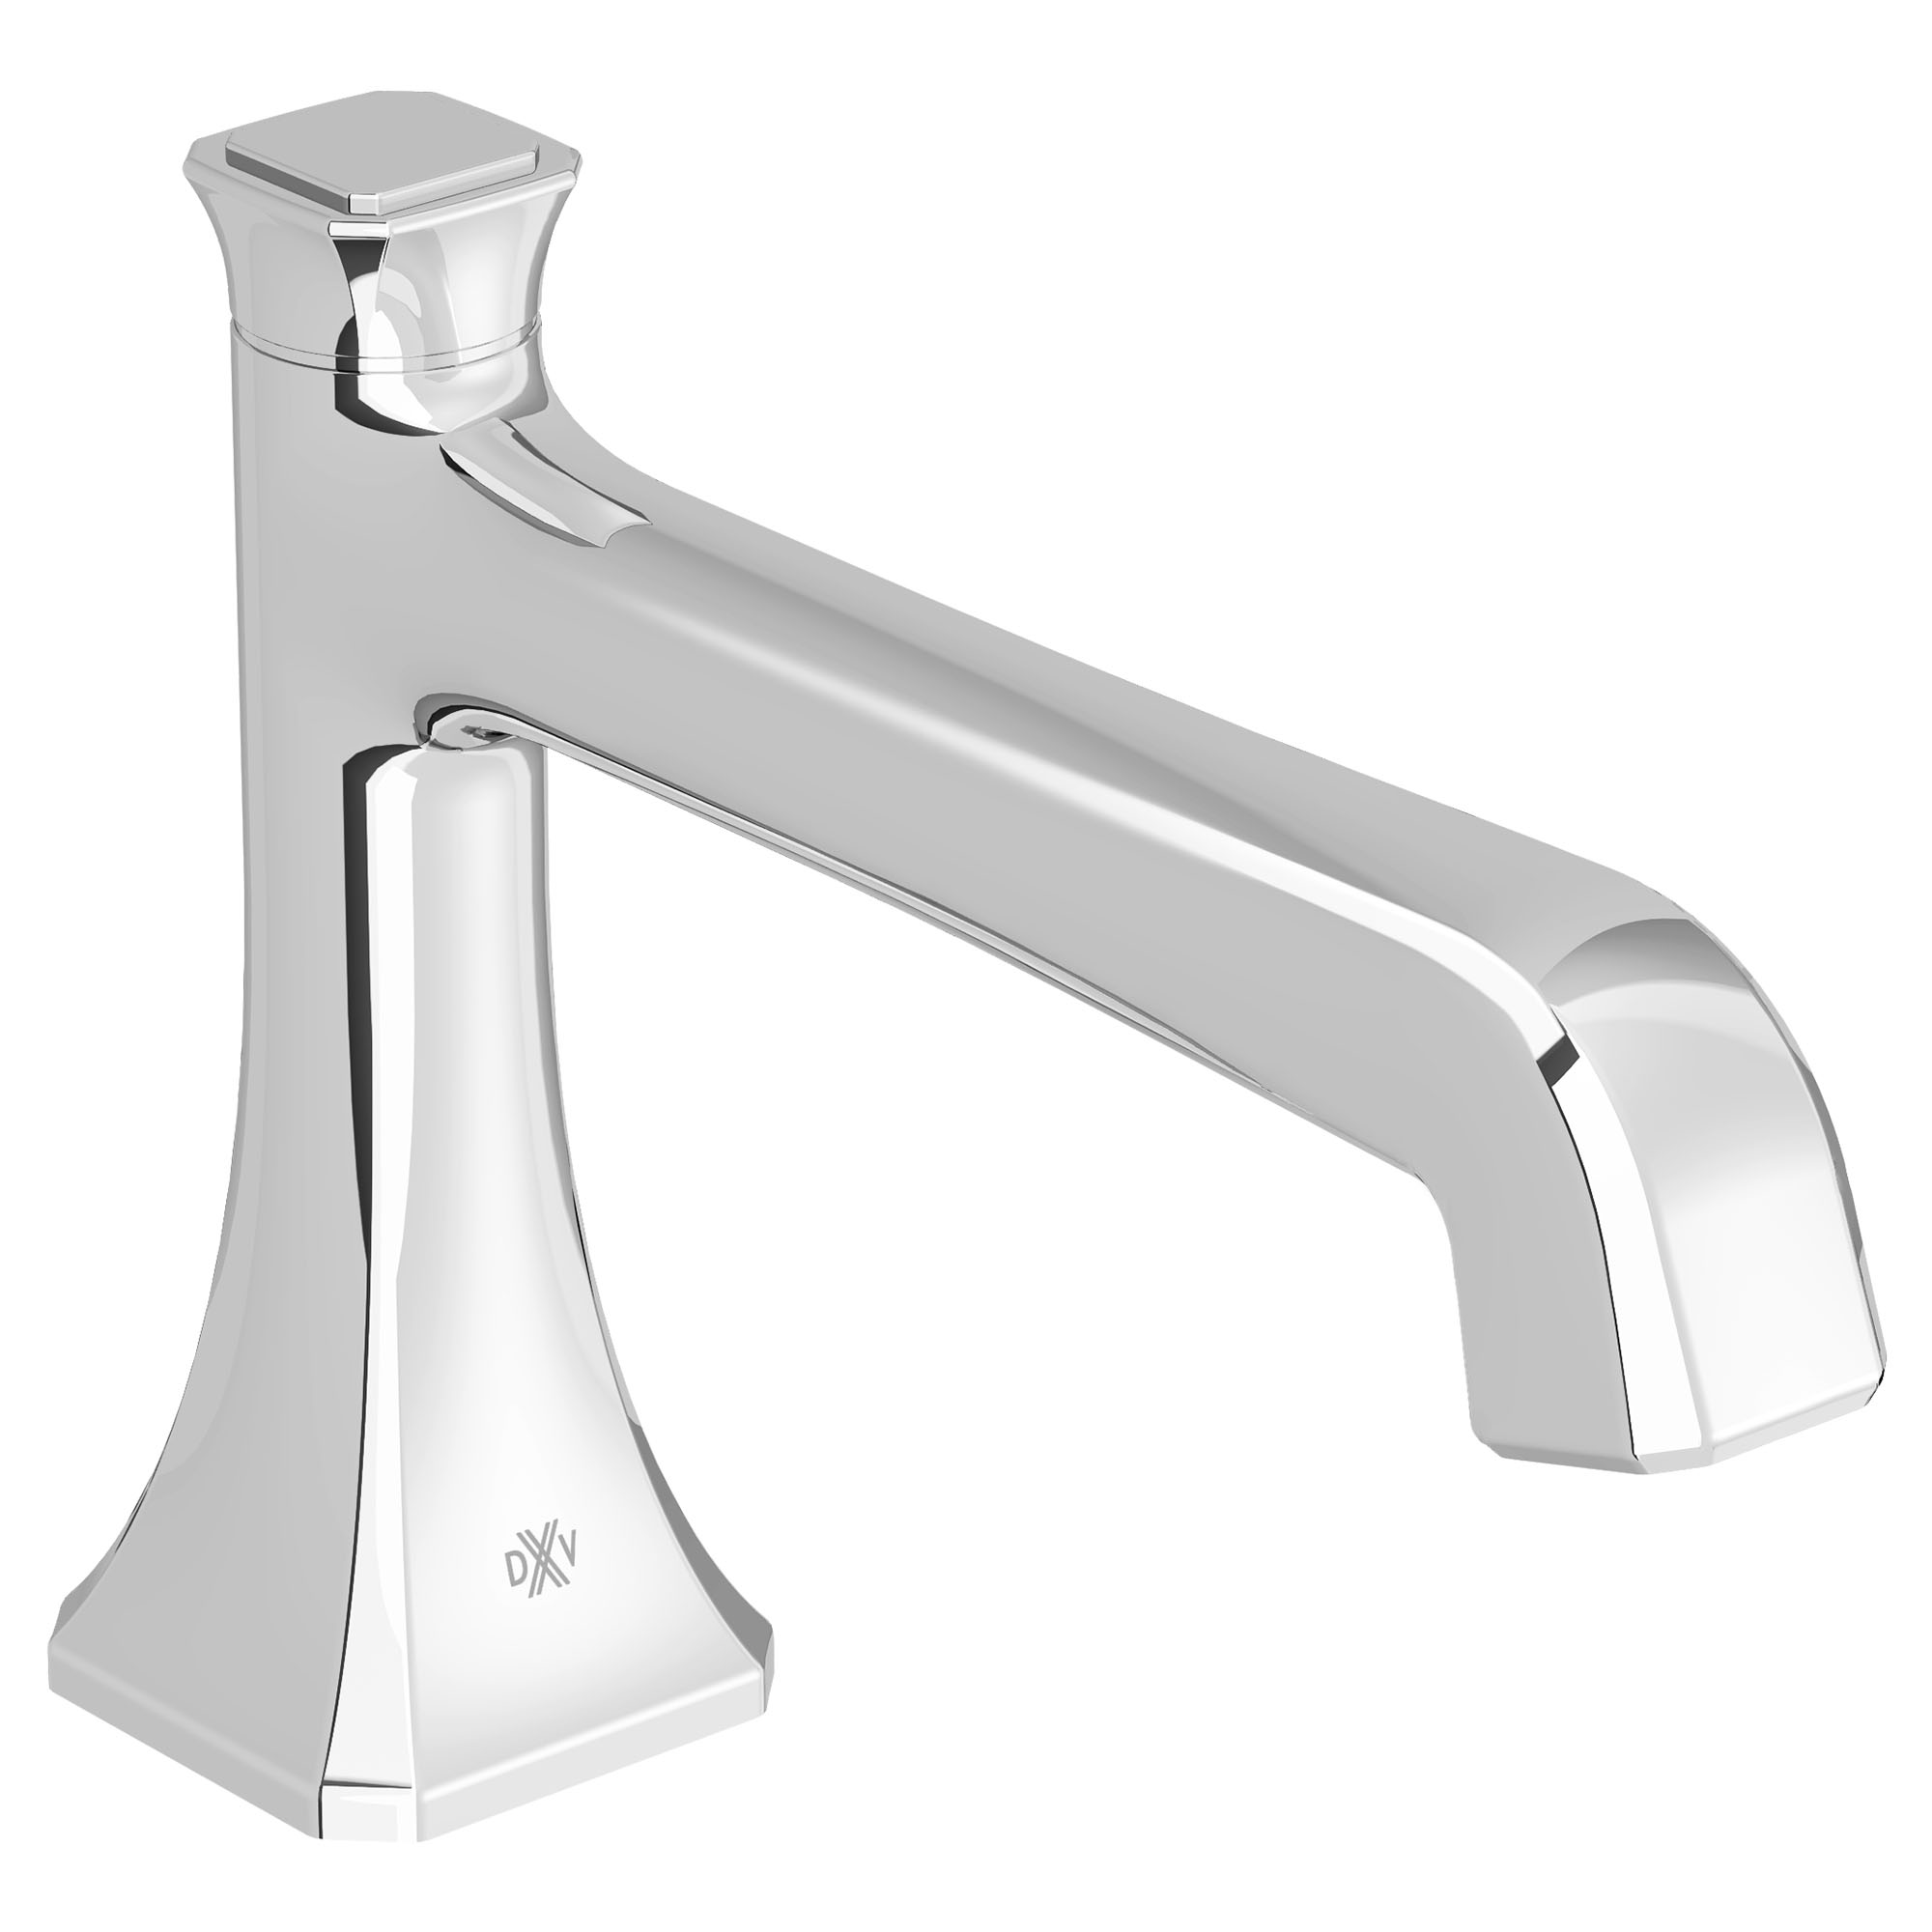 Belshire Low-Spout Bathroom Faucet